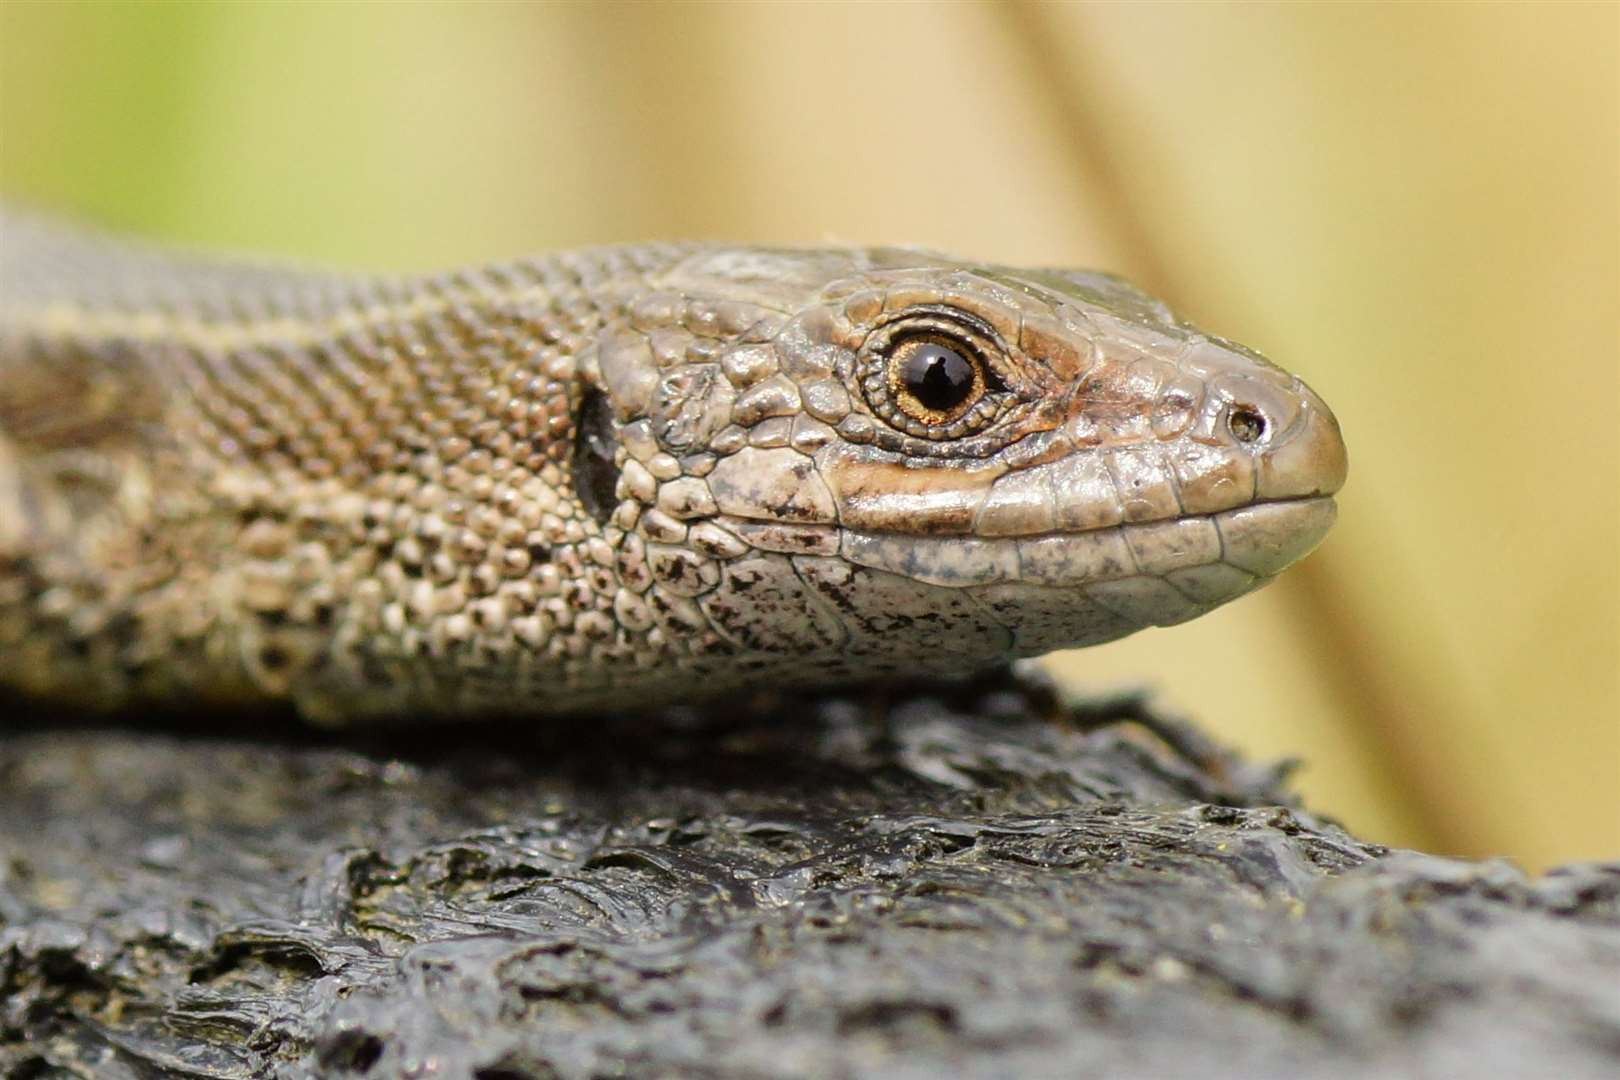 Baytree Garden Centre at Weston hosts a reptile show on Sunday from 11am until 3pm. (Stock image)